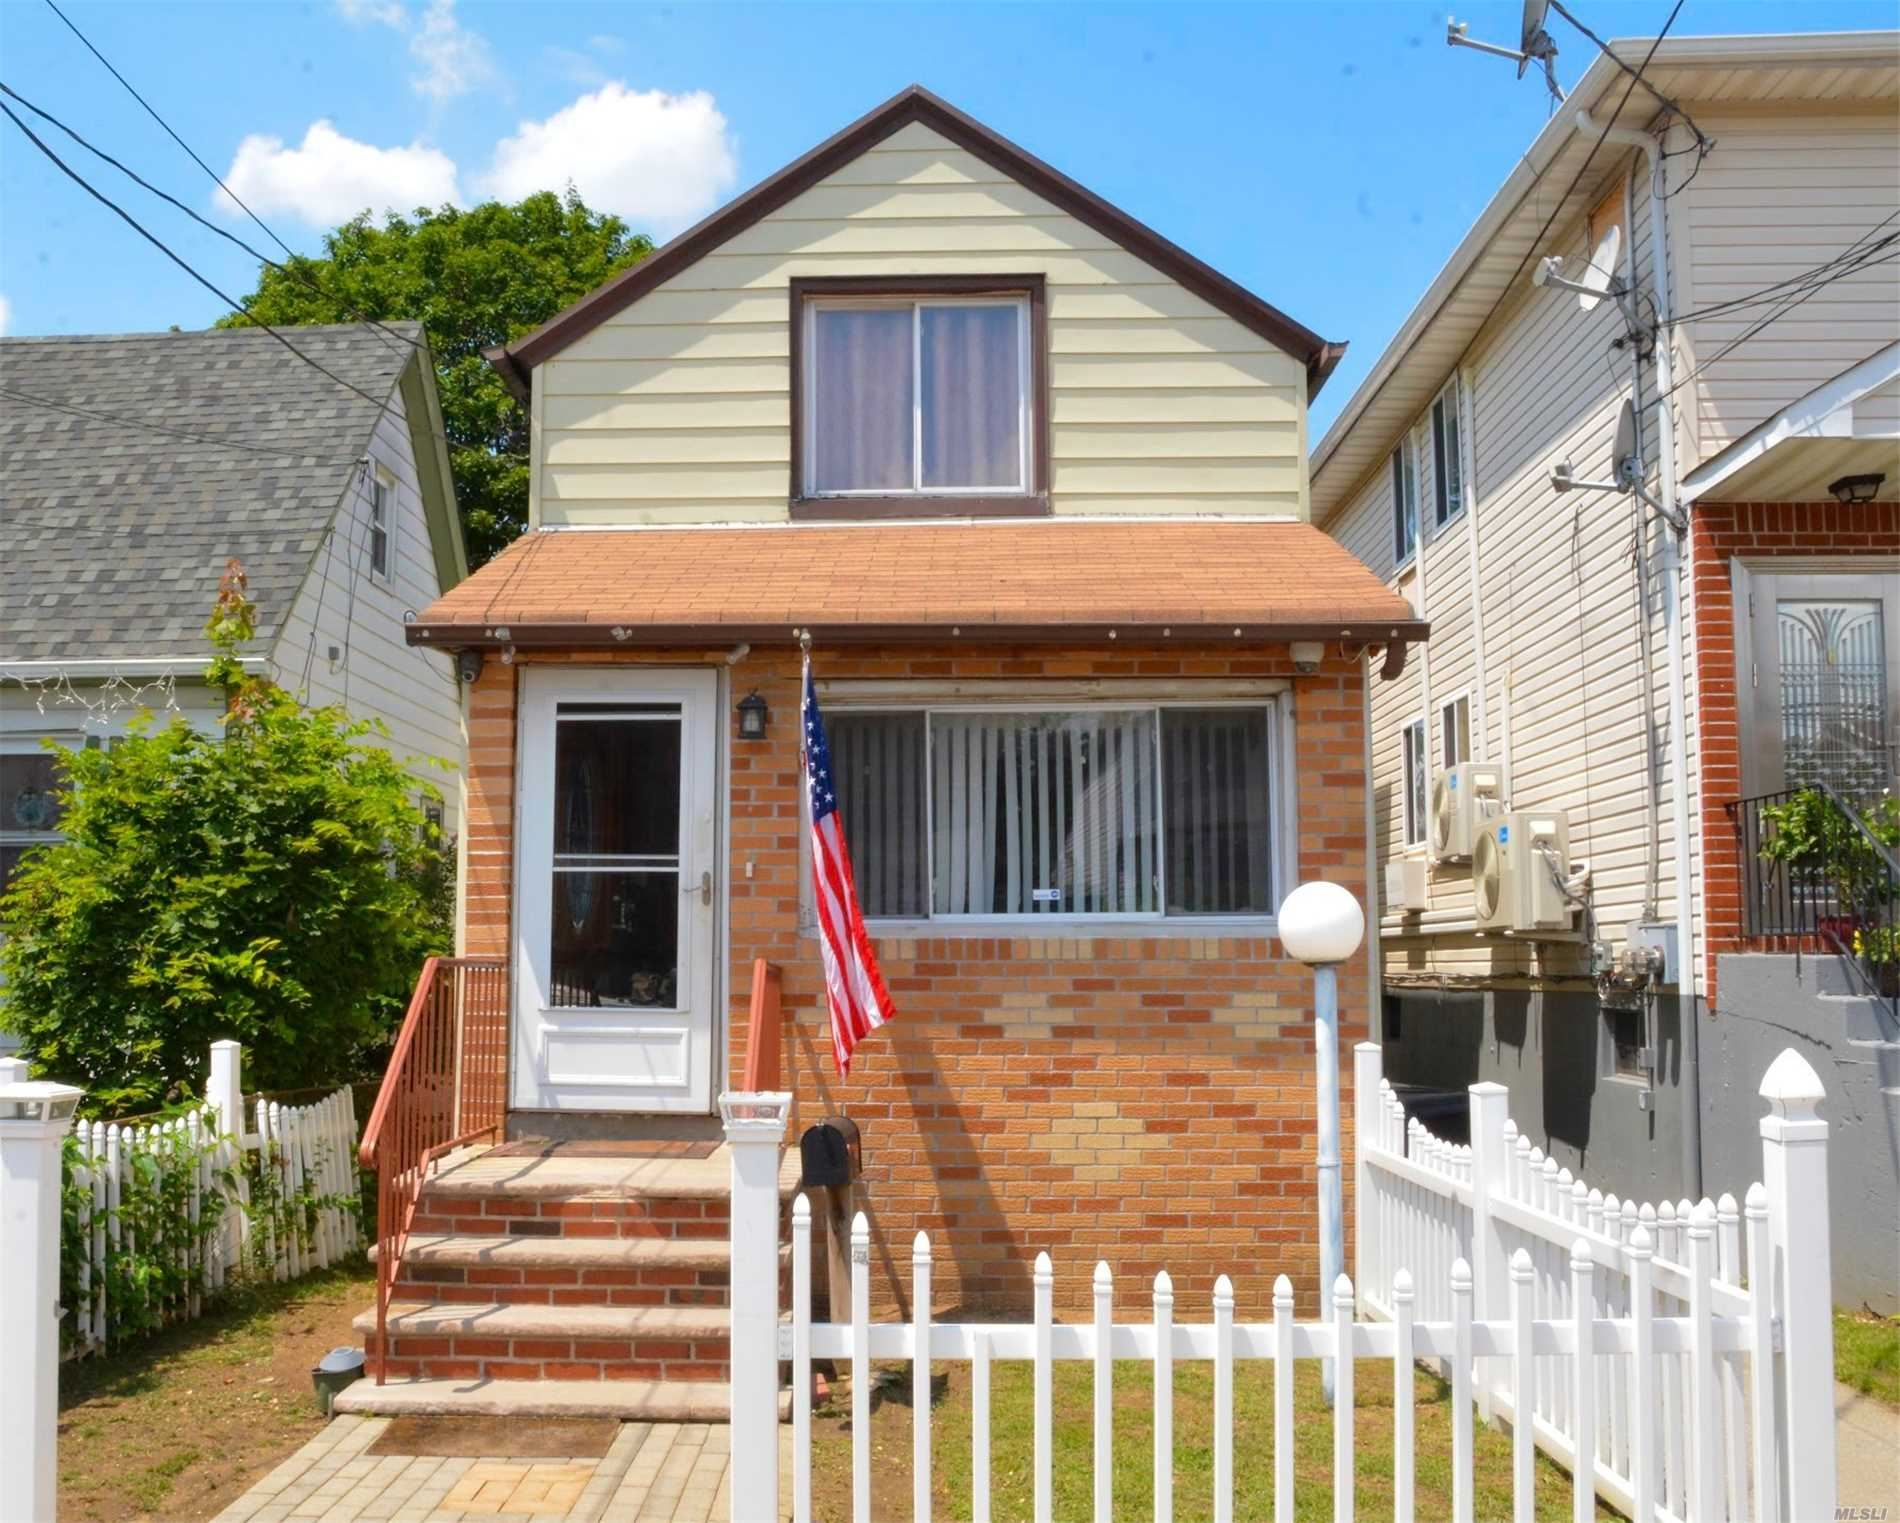 130-16 147th Street, Jamaica, NY 11434 - MLS#: 3239207